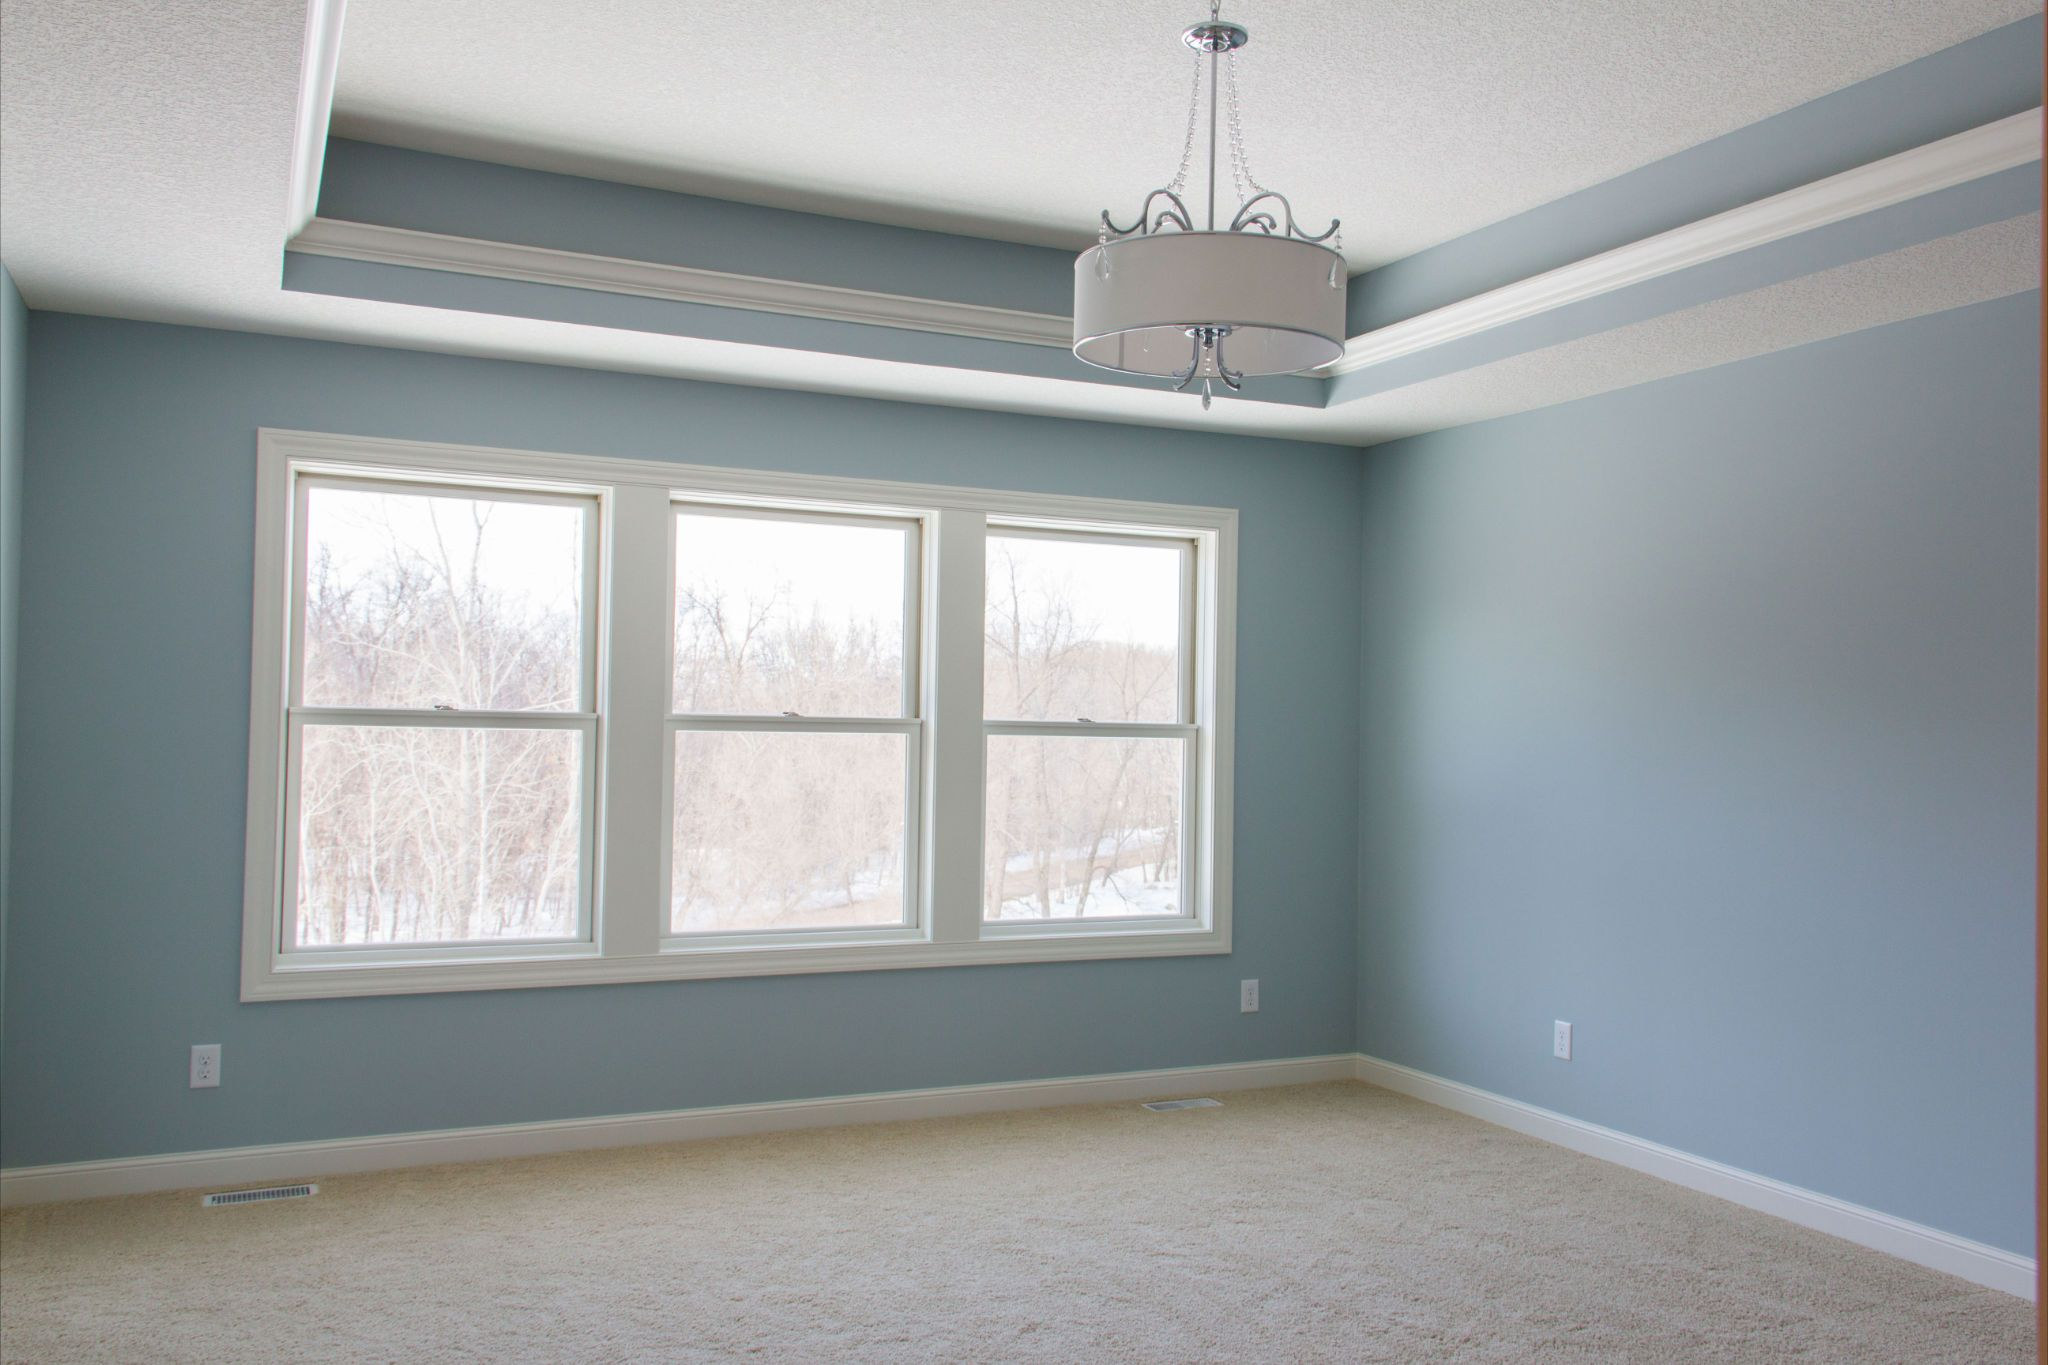 Master Suite Bedroom Ldk Master Suite Bedroom With Ceiling Bump Up And Crown Molding